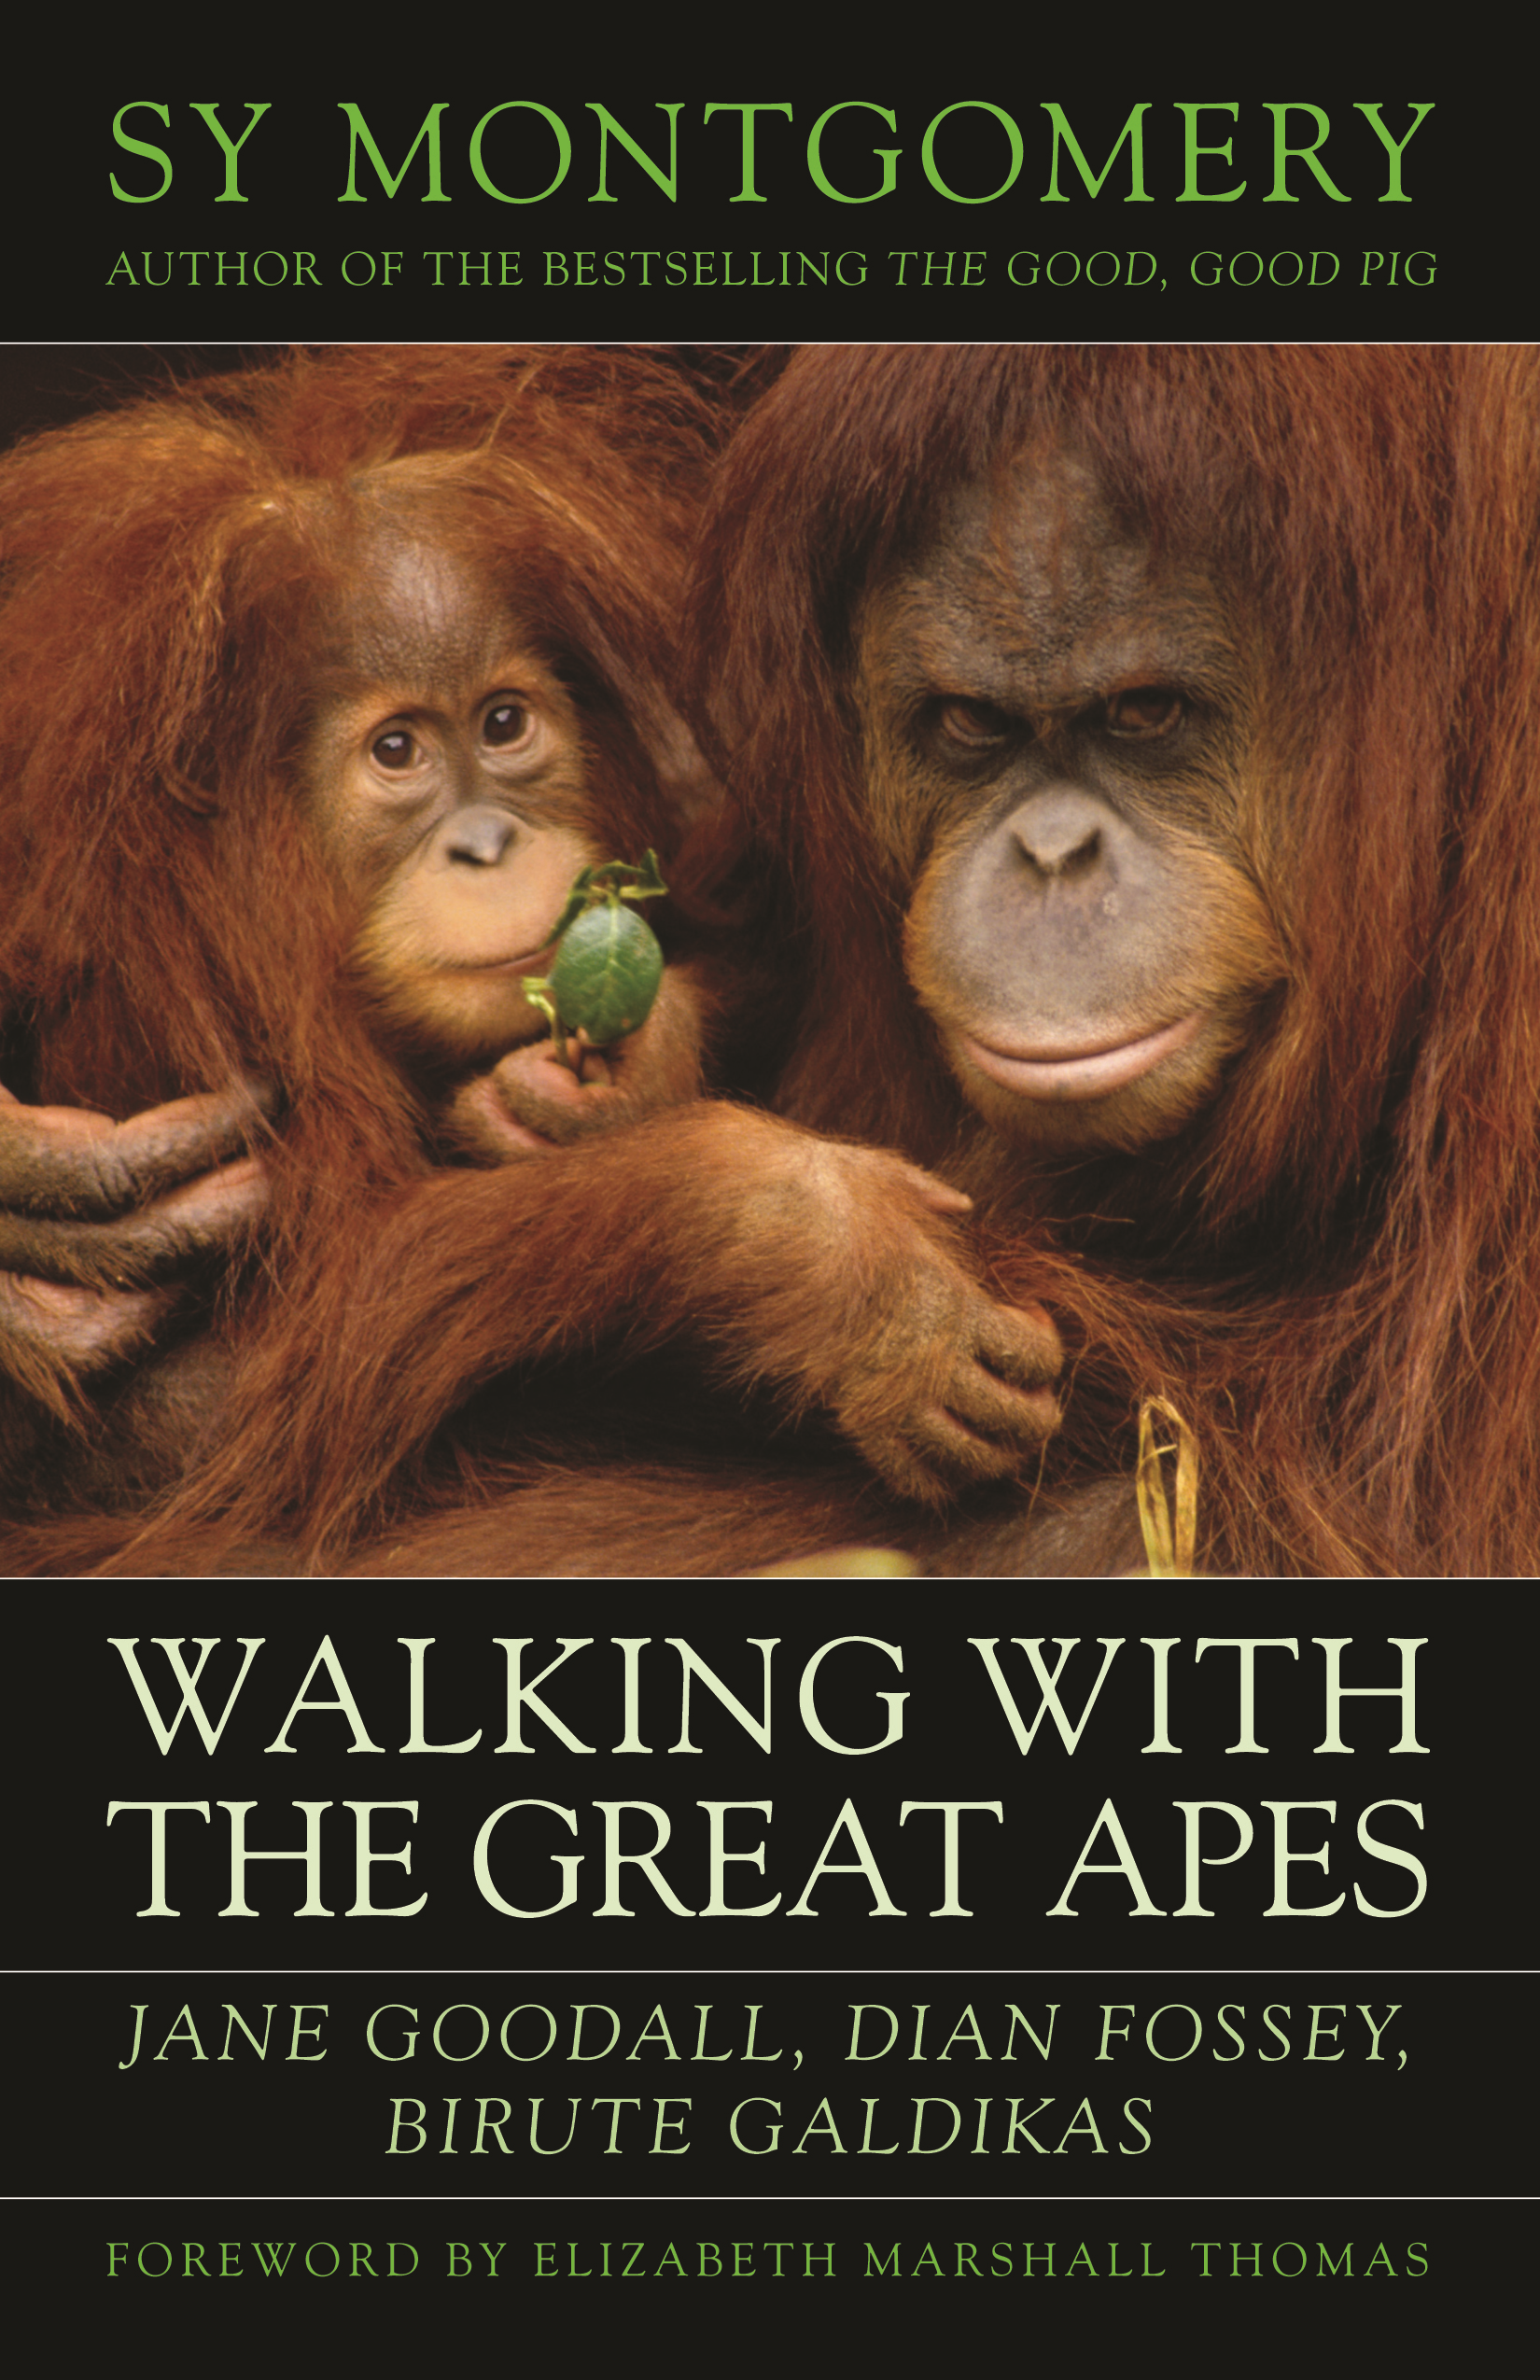 Walking with the Great Apes Jane Goodall, Dian Fossey, Biruté Galdikas